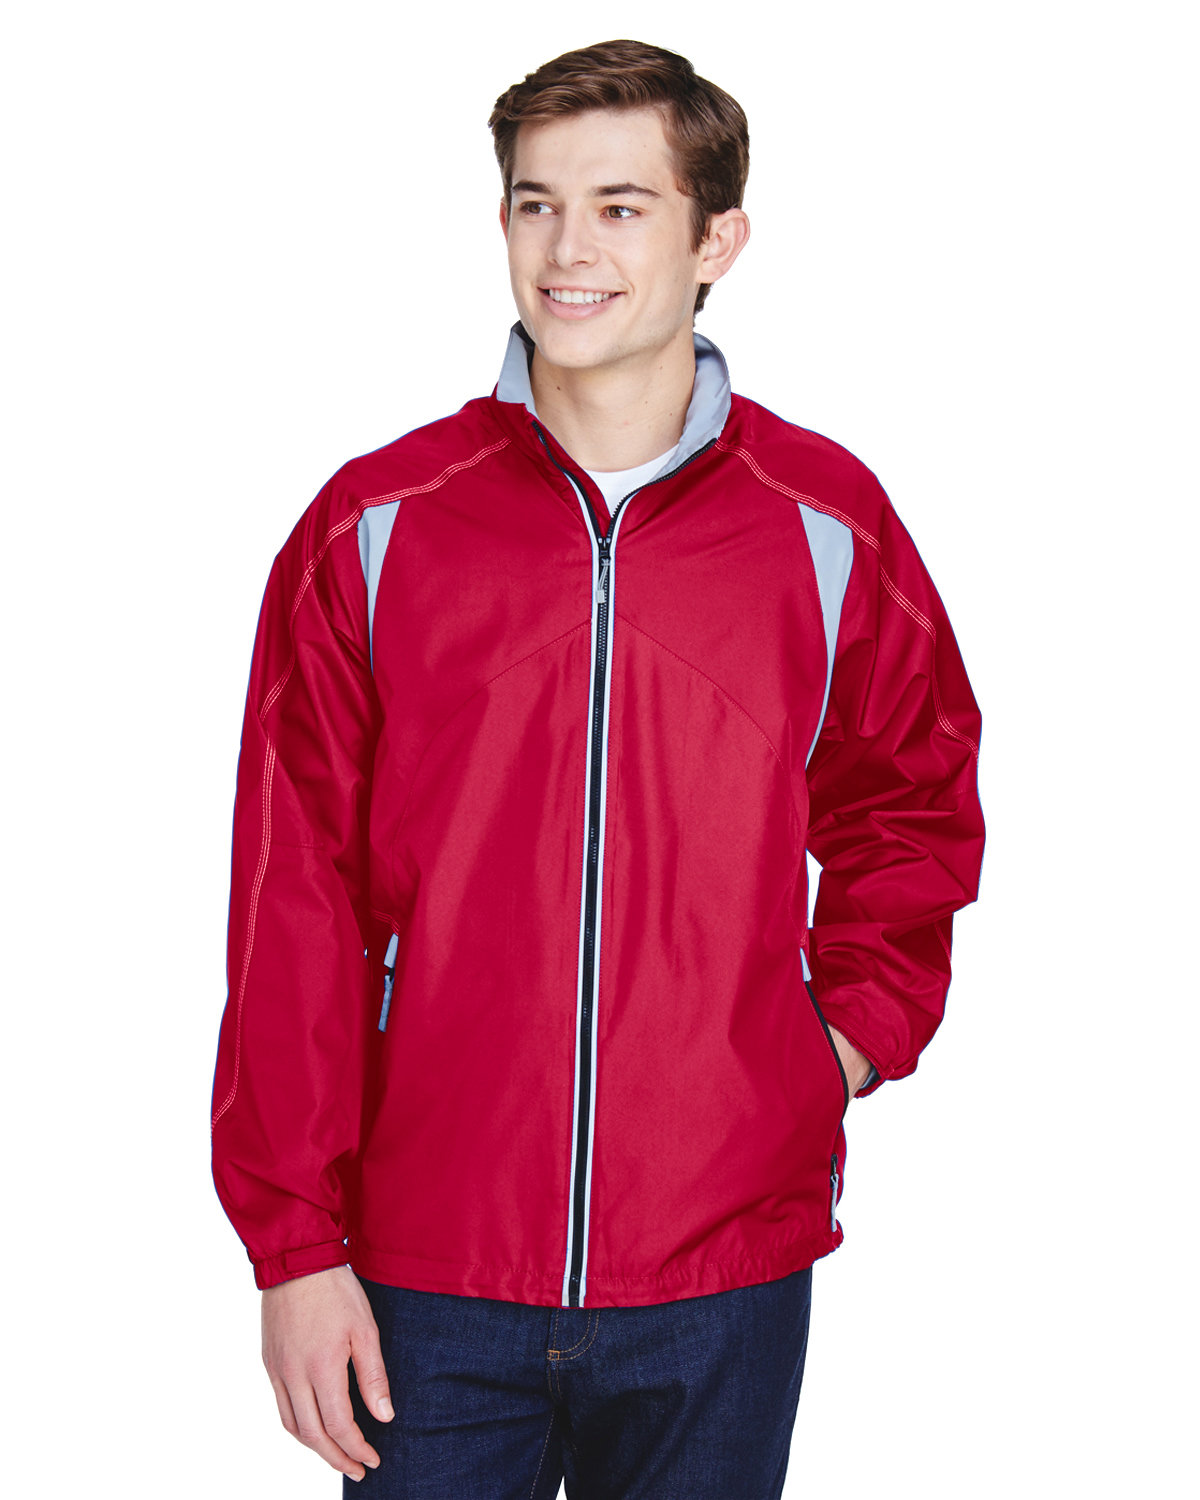 North End Men's EnduranceLightweight Colorblock Jacket OLYMPIC RED